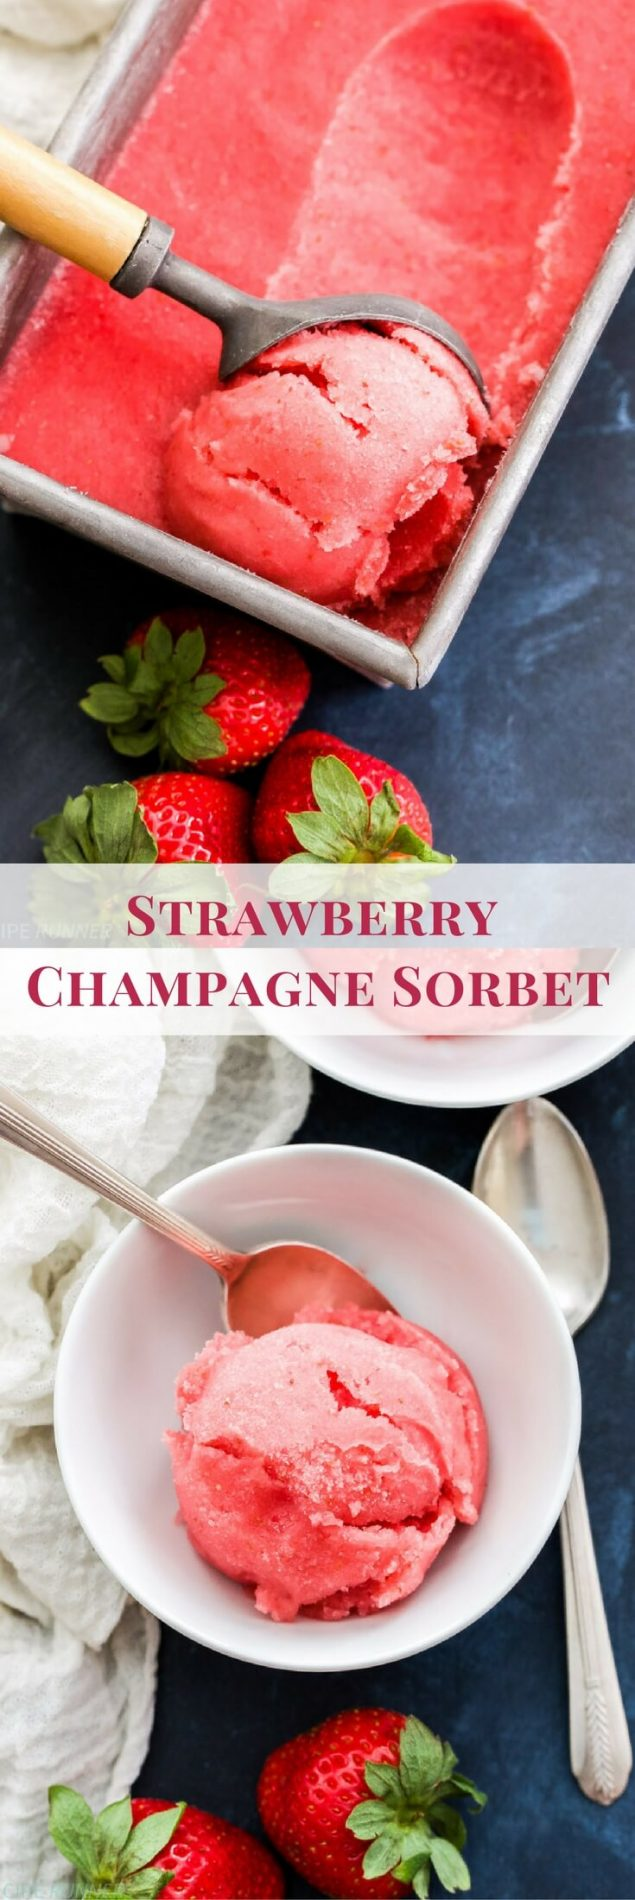 The classic combination of strawberries and champagne is transformed into a sweet, frozen, summer treat! You'll love this refreshing and slightly boozy Strawberry Champagne Sorbet!